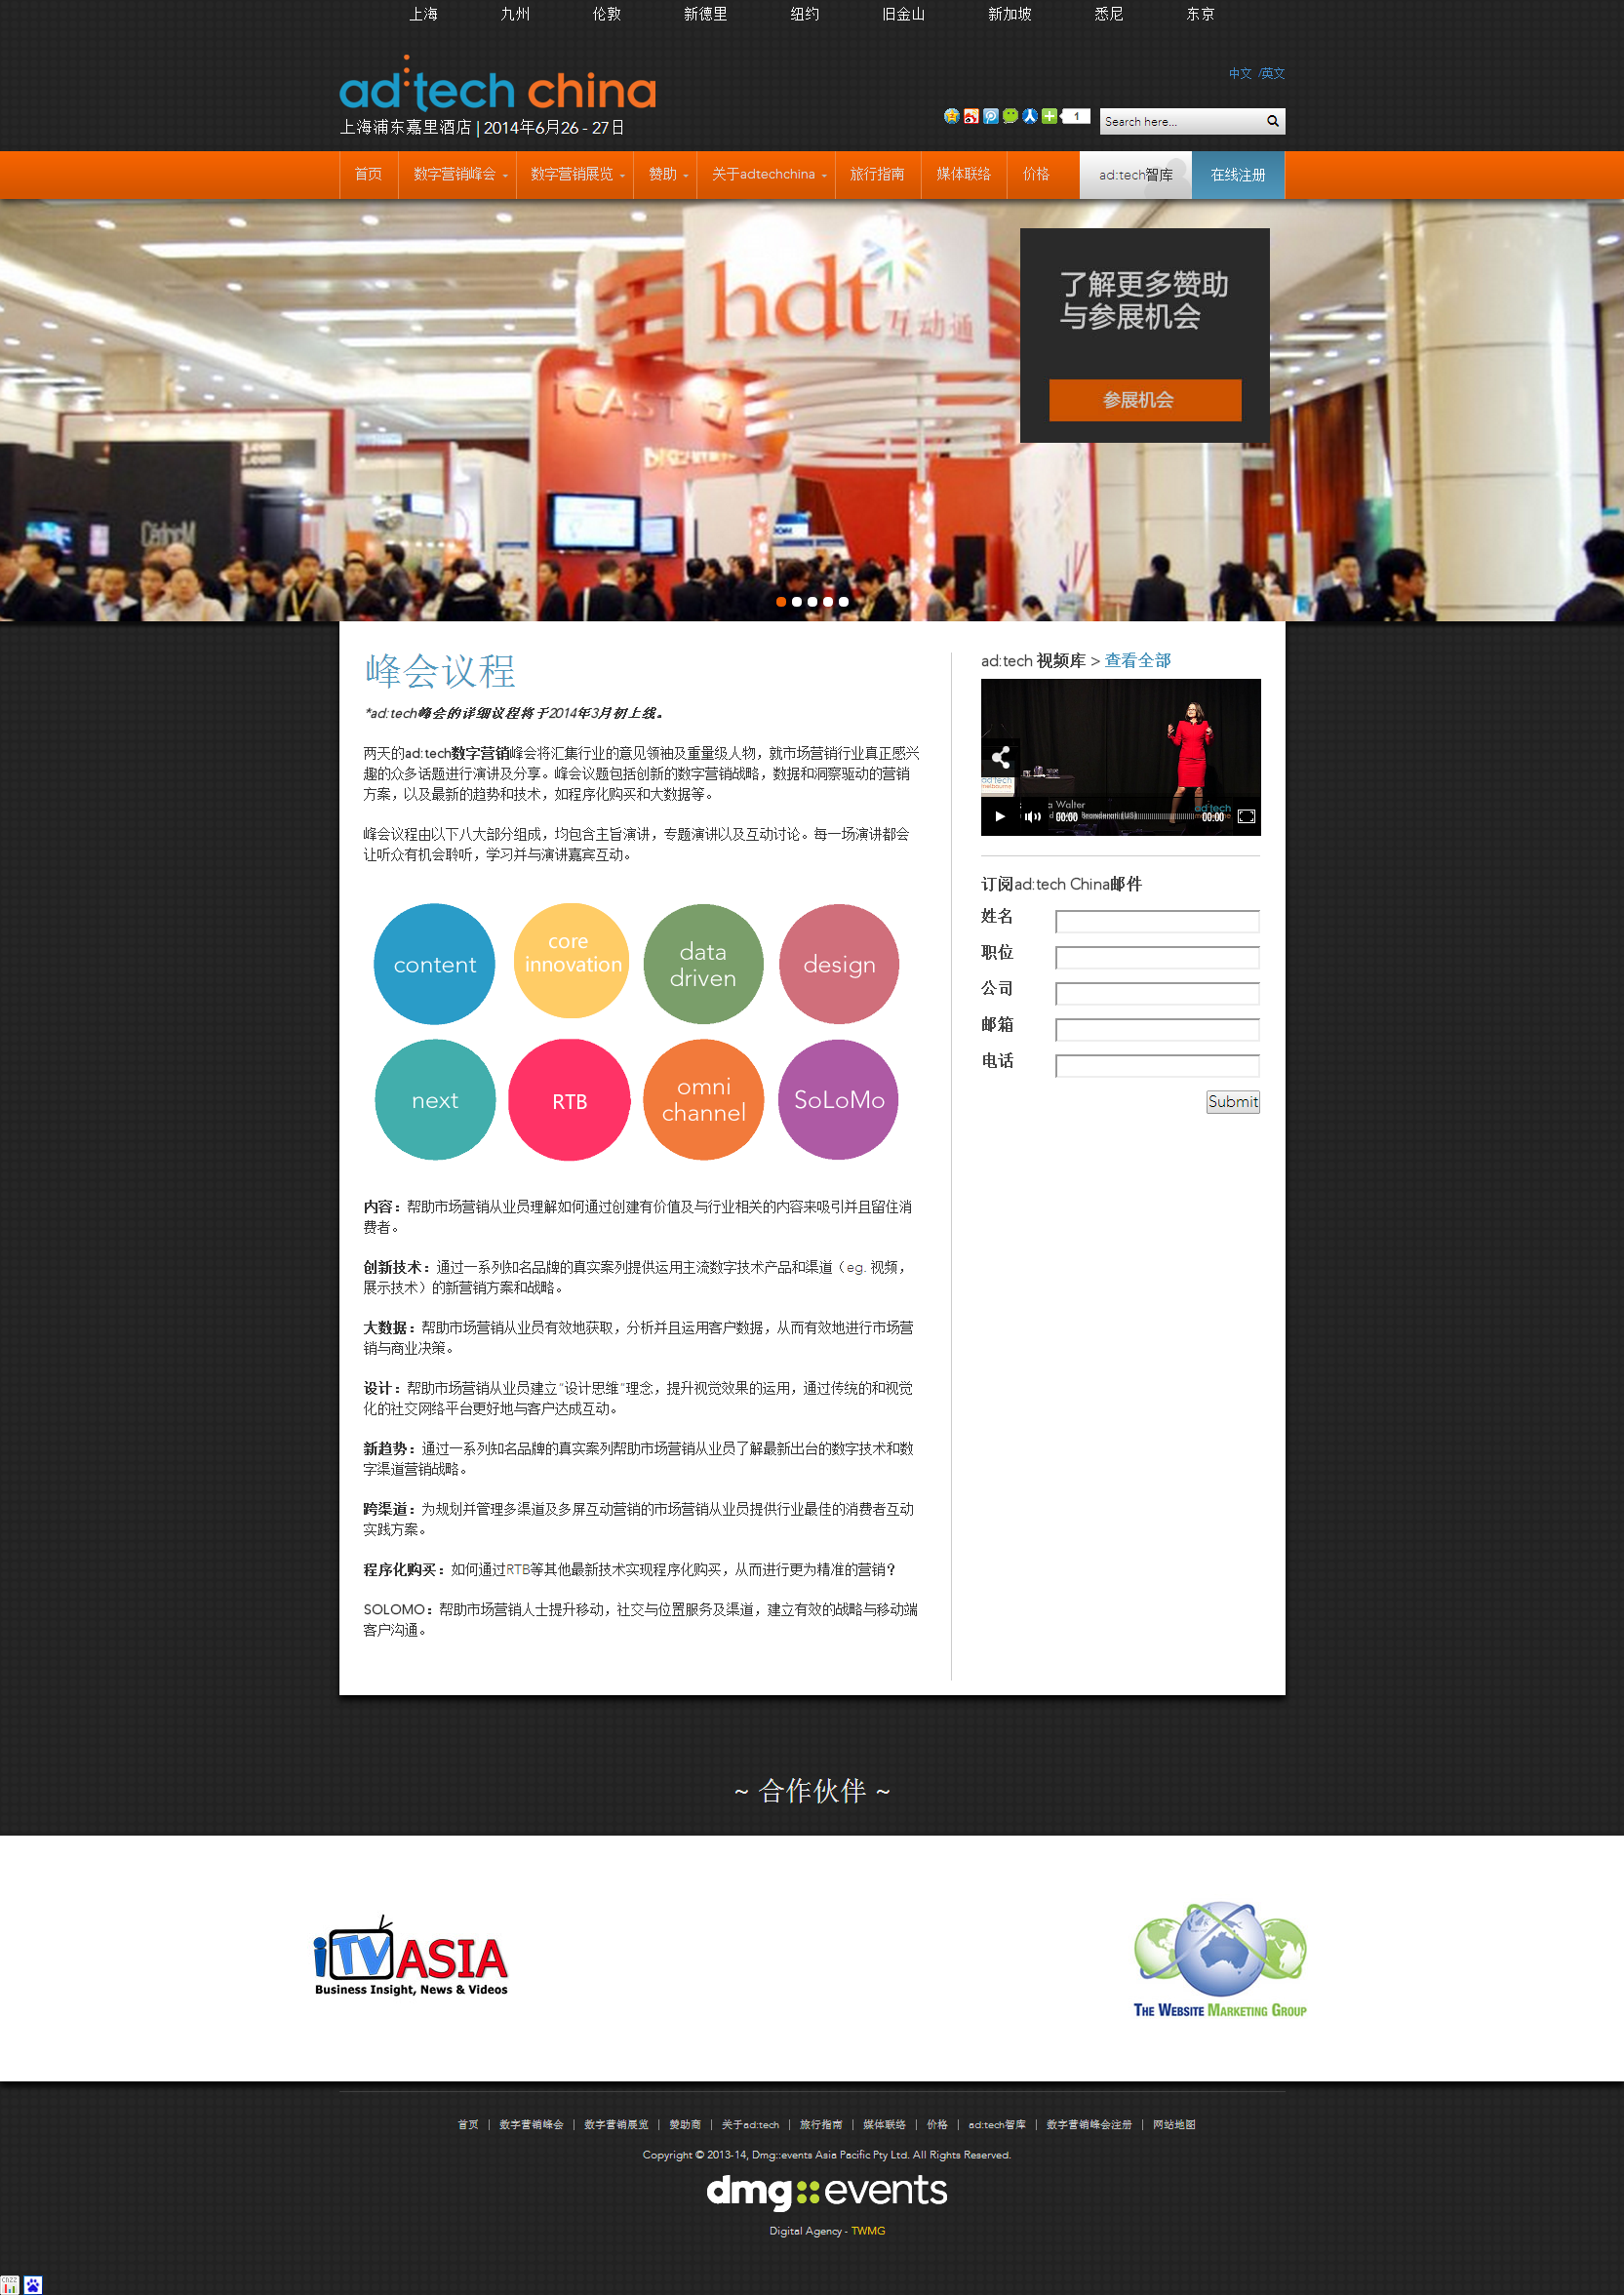 Adtech China Digital Agency Sydney - Agenda Page